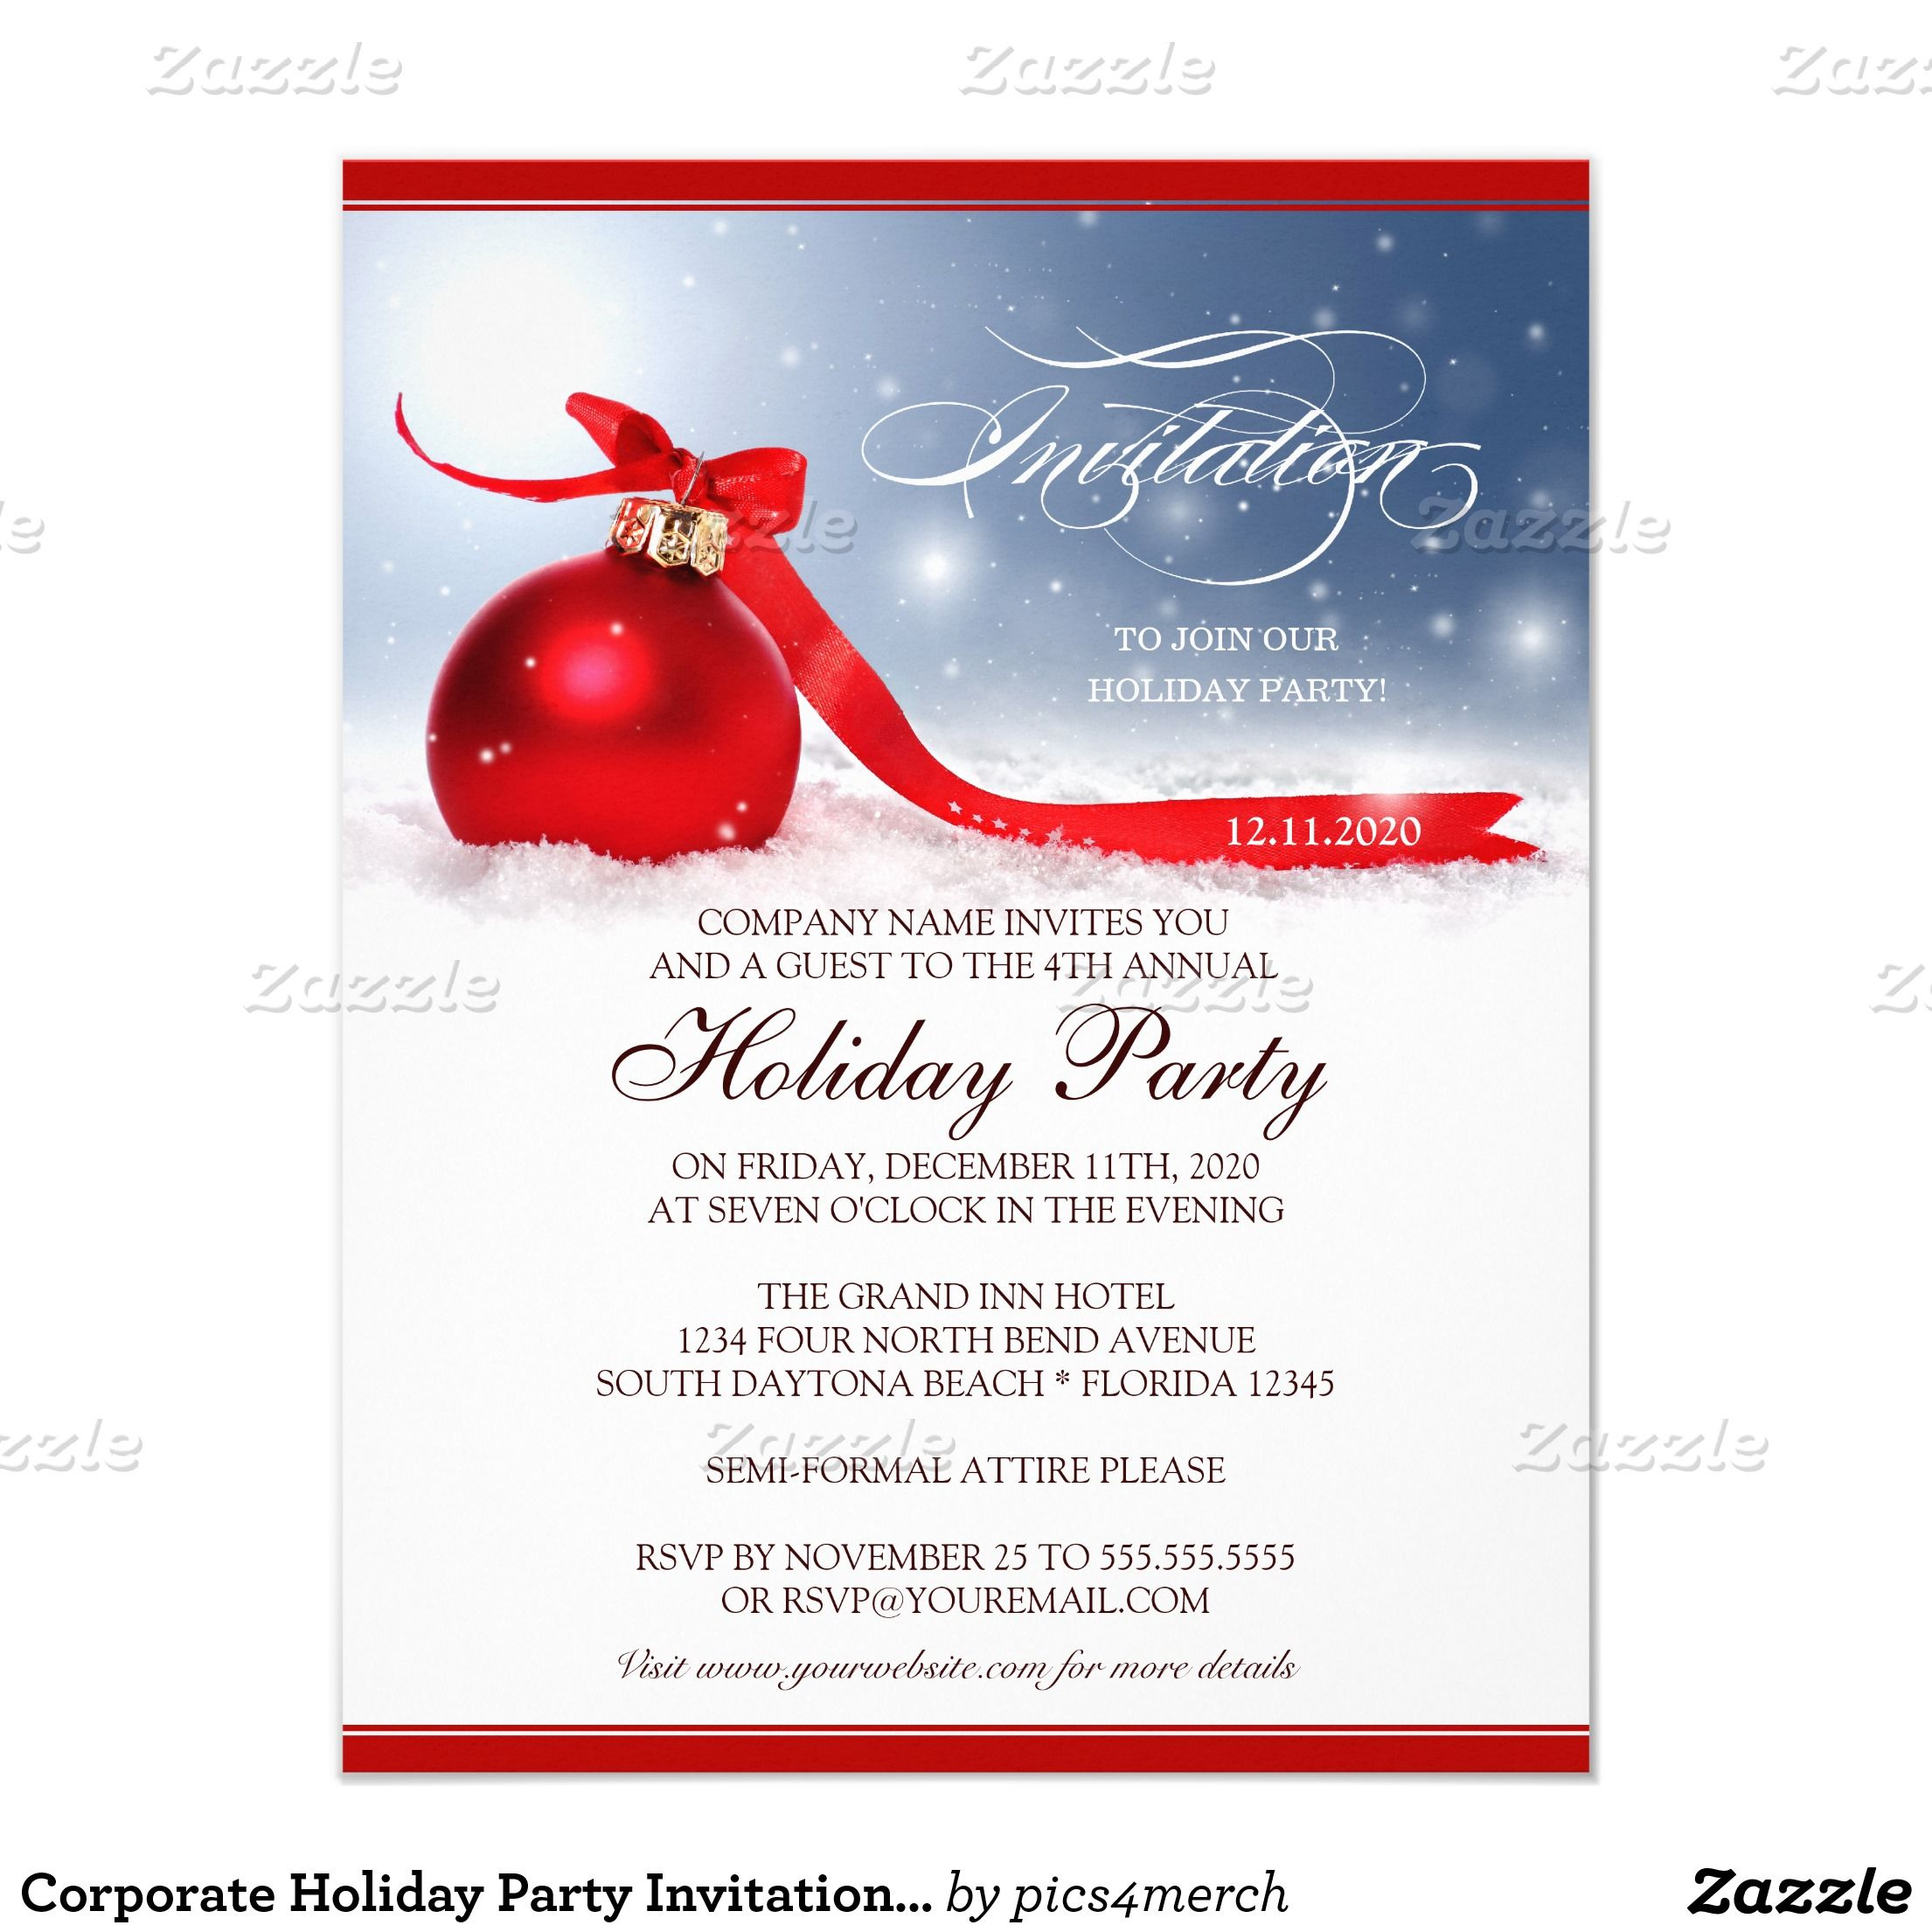 Corporate Holiday Party Invitation Template | Party invitation ...